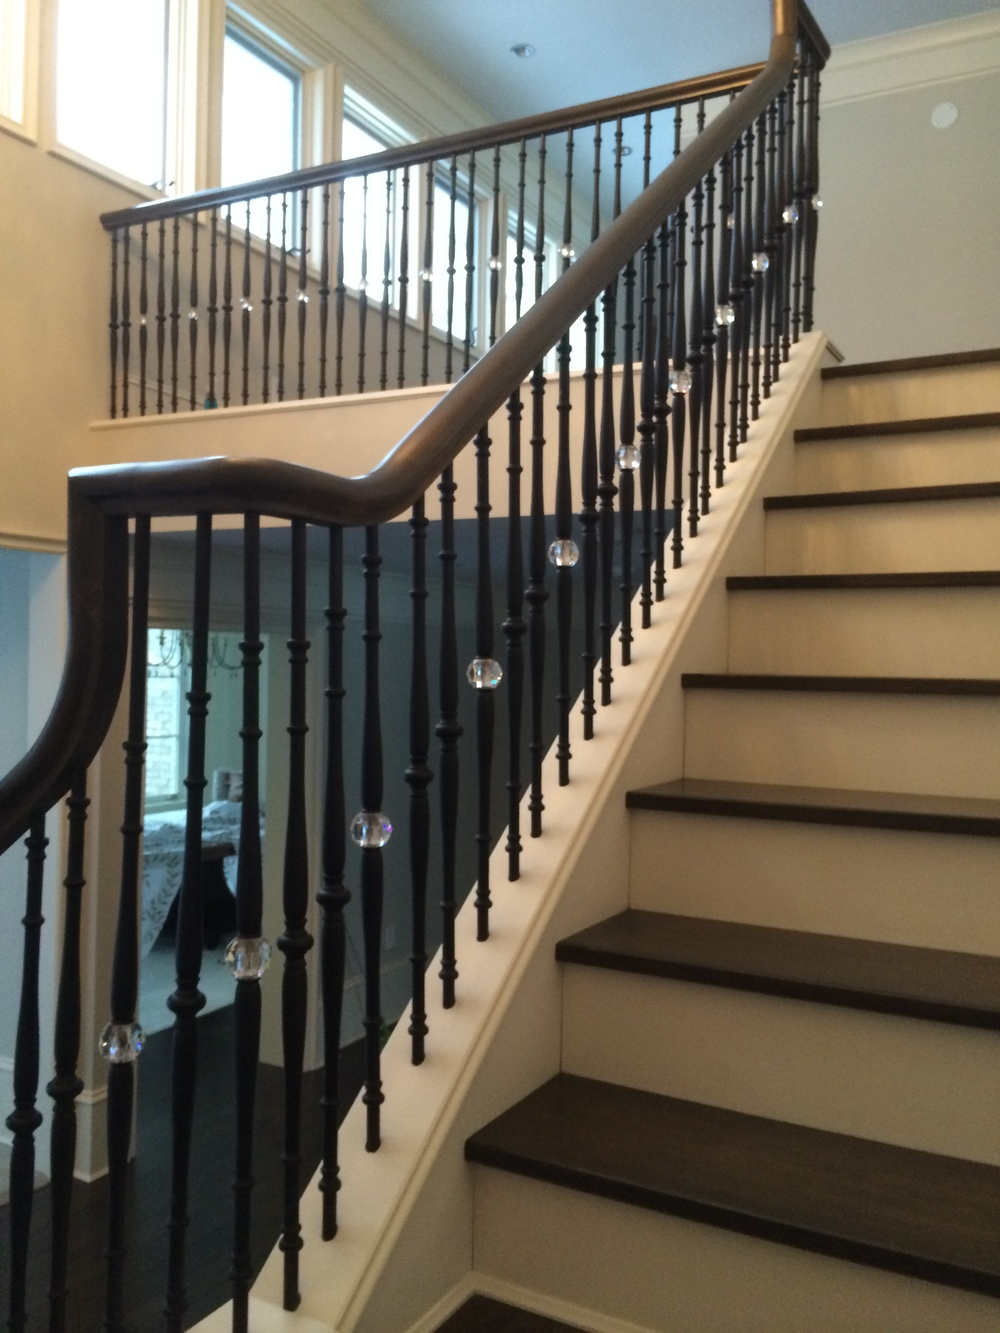 Traditional railings with iron balusters